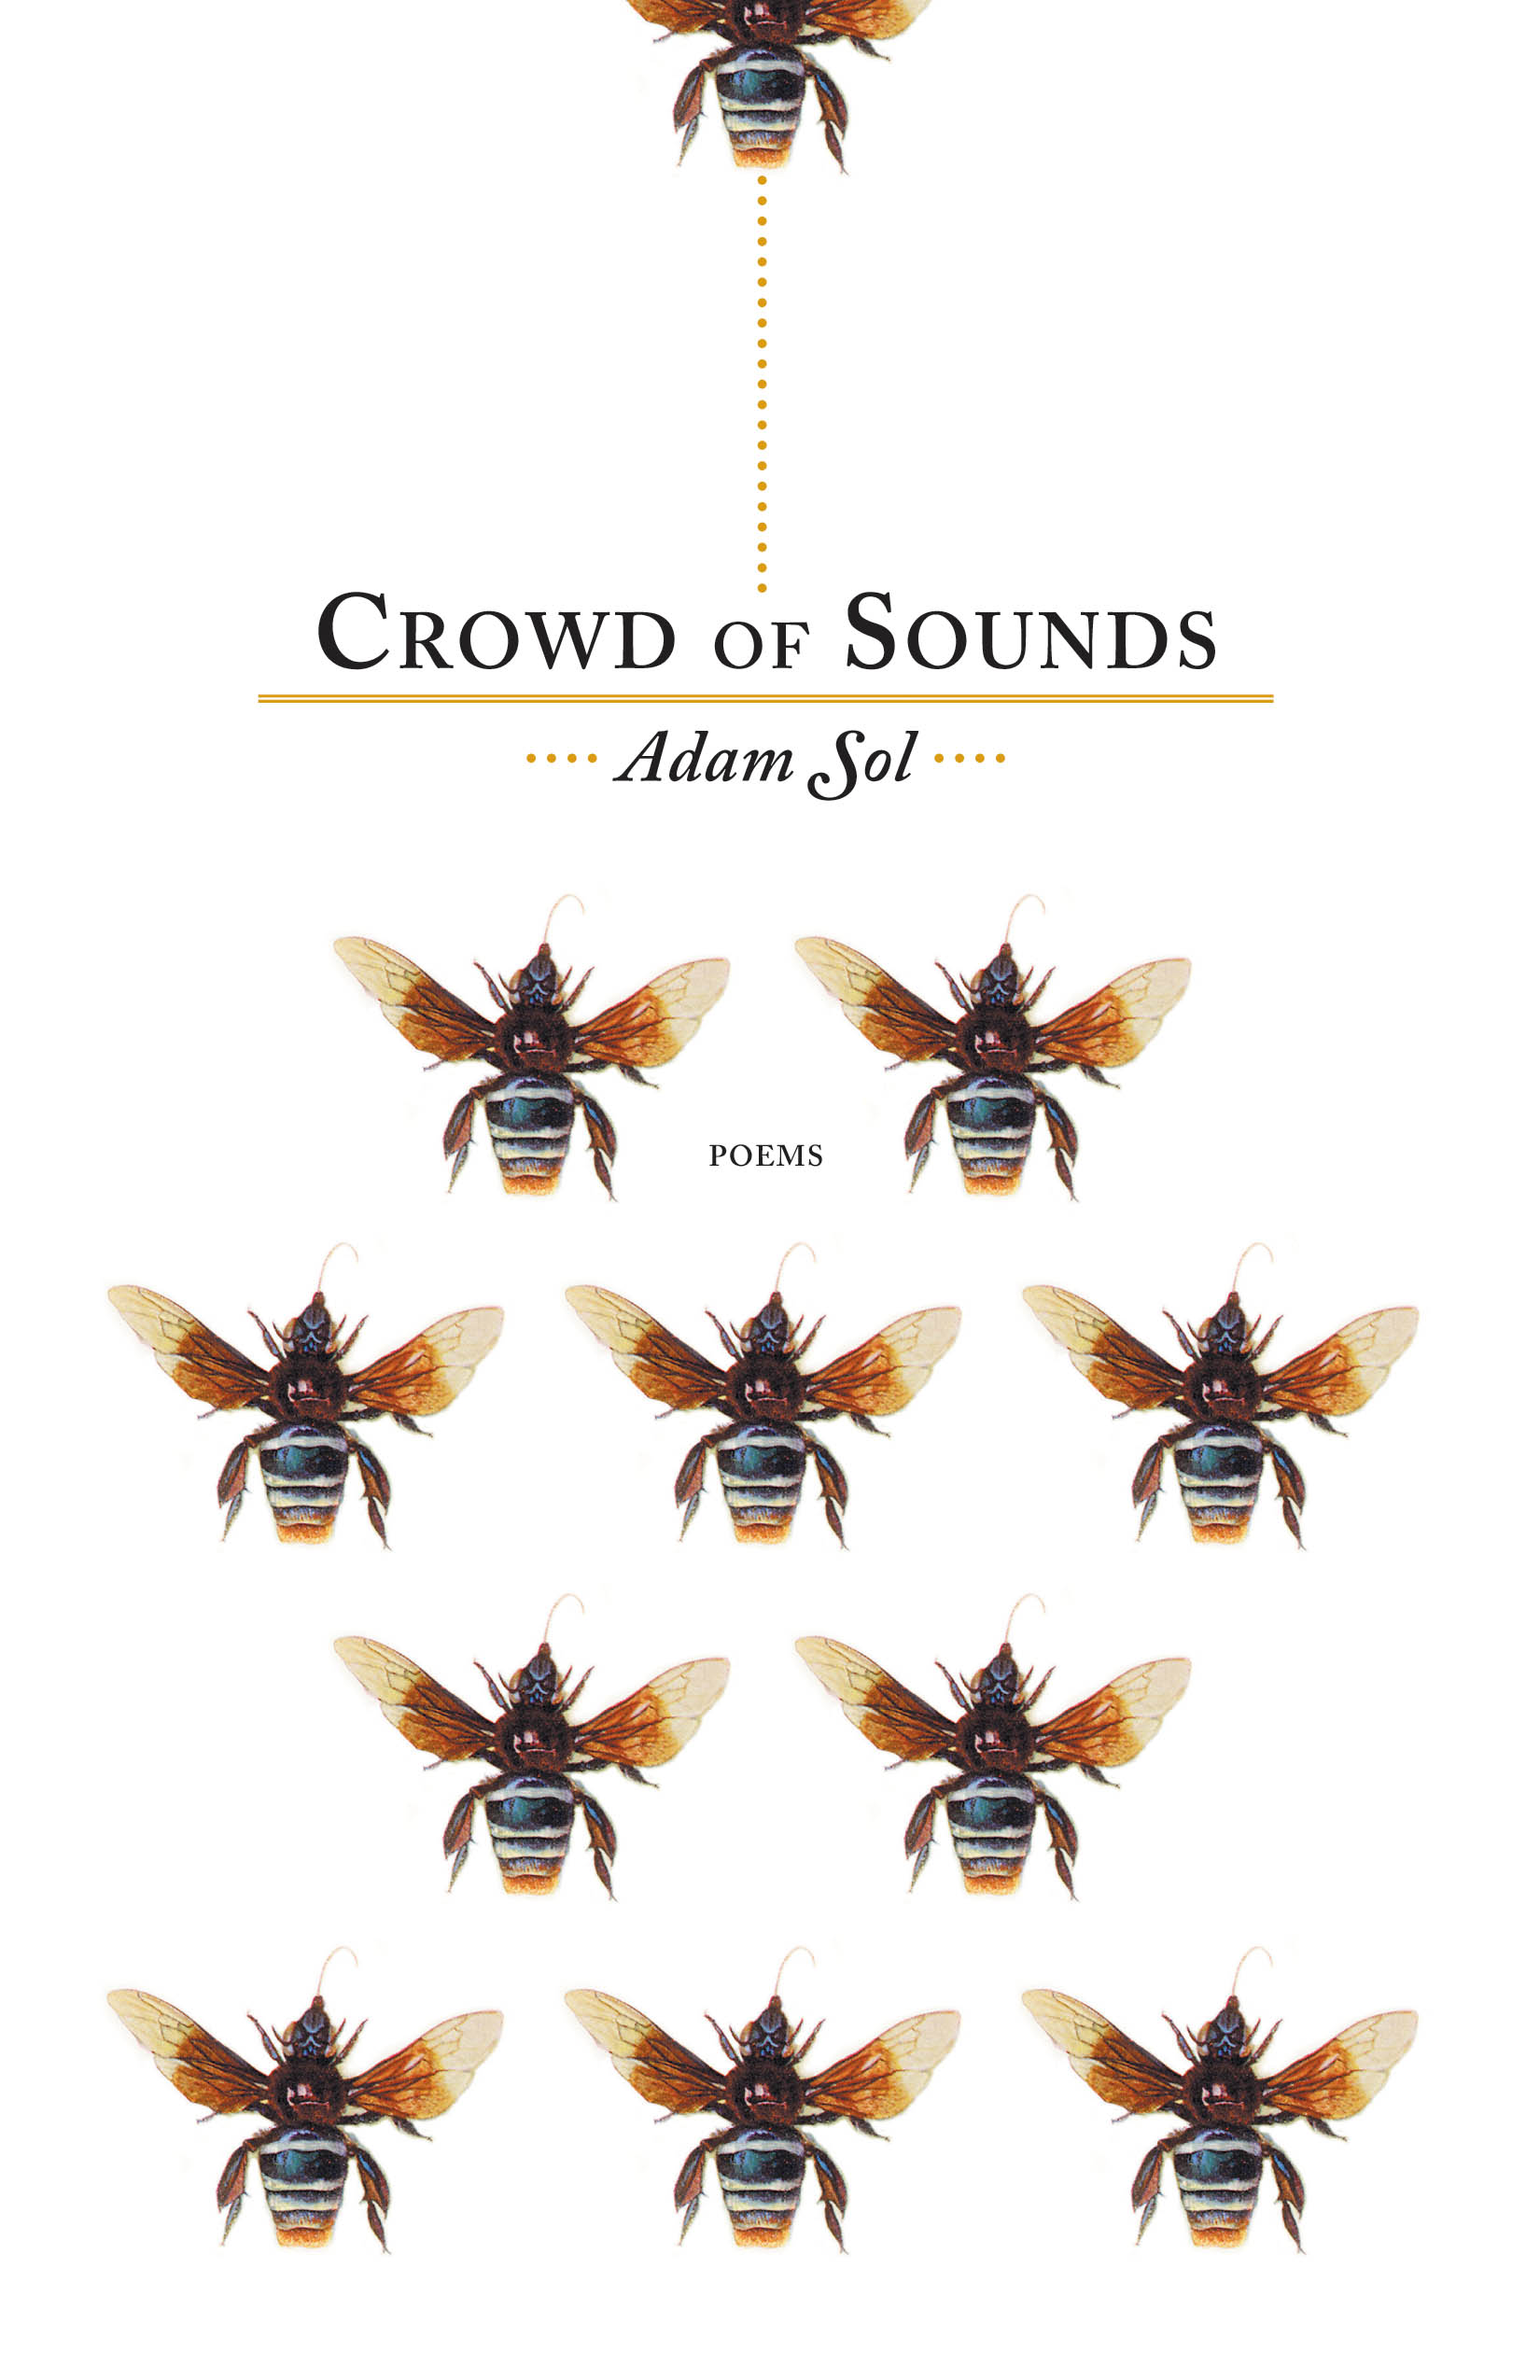 Crowd of Sounds by Adam Sol